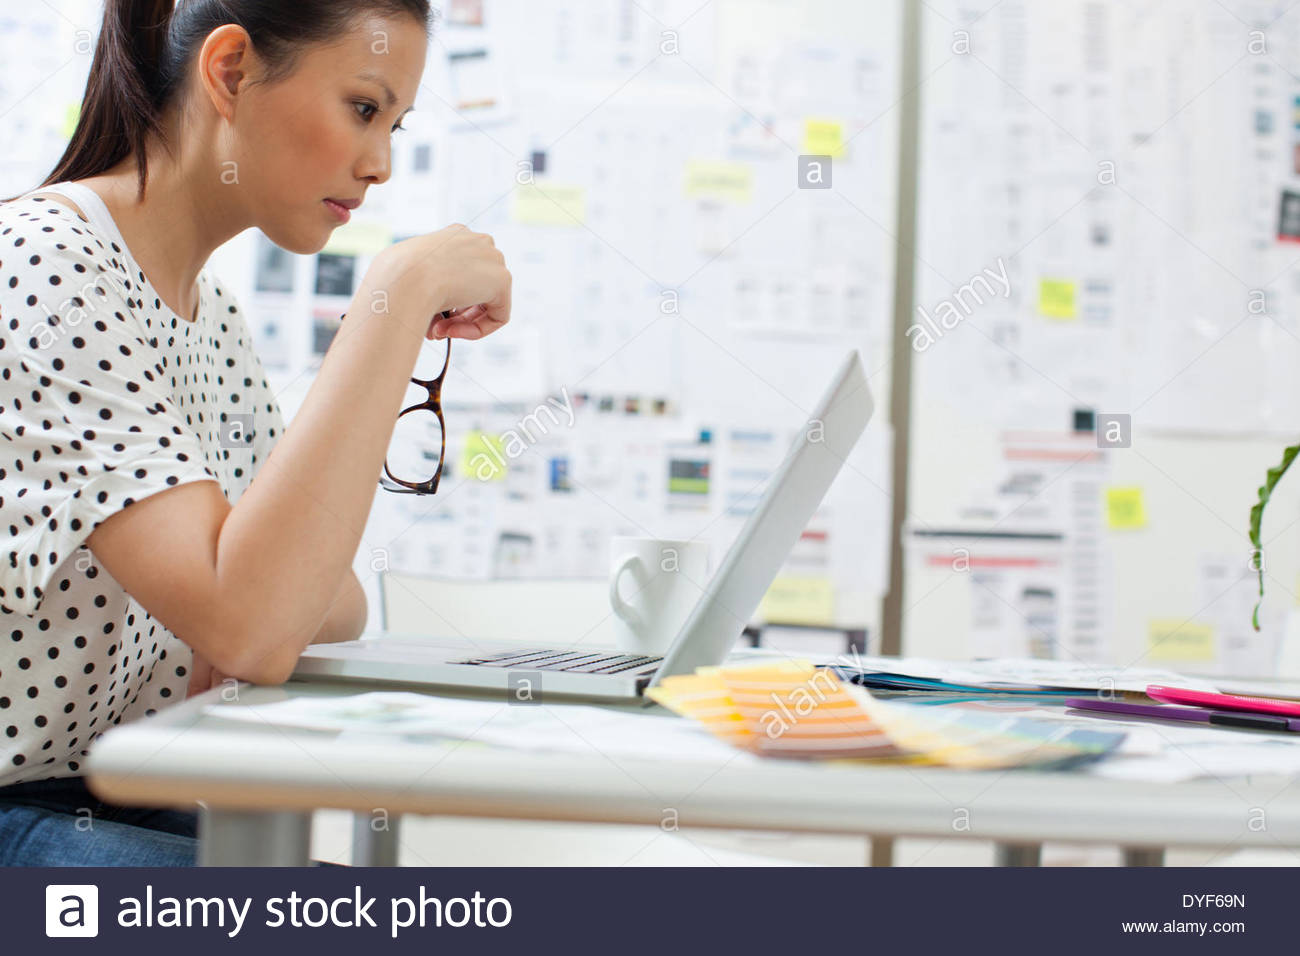 Serious businesswoman looking down laptop in office - Stock Image